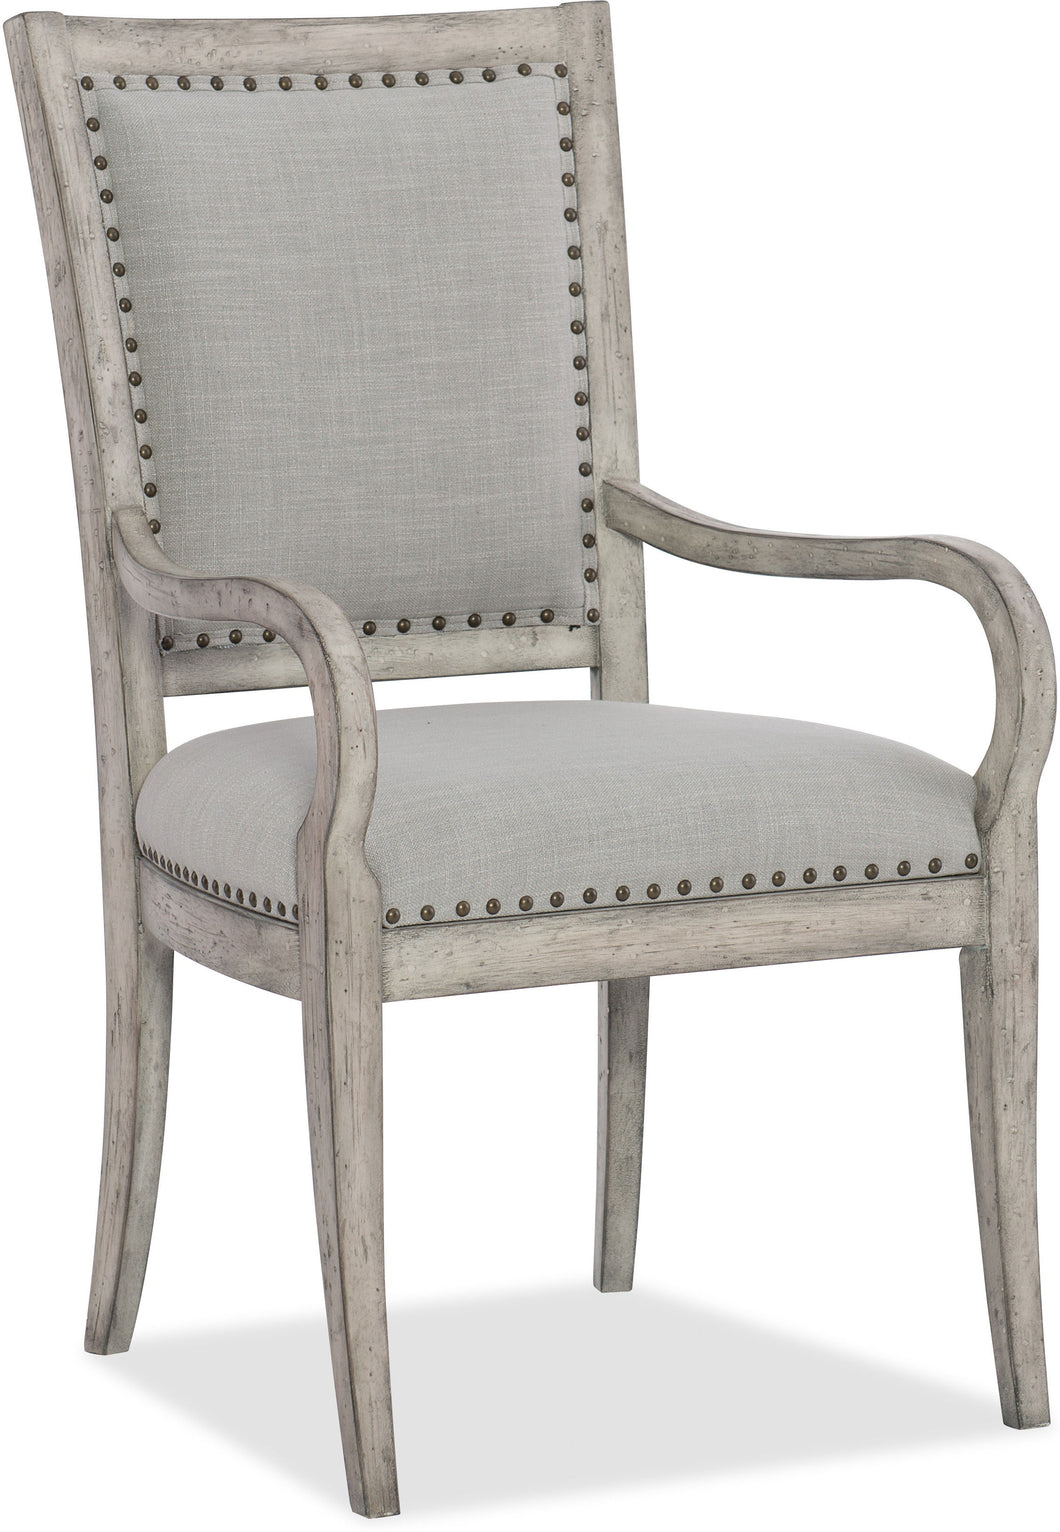 Hooker Furniture Dining Room Boheme Vitton Upholstered Arm Chair - 2 per carton/price ea - Dream art Gallery